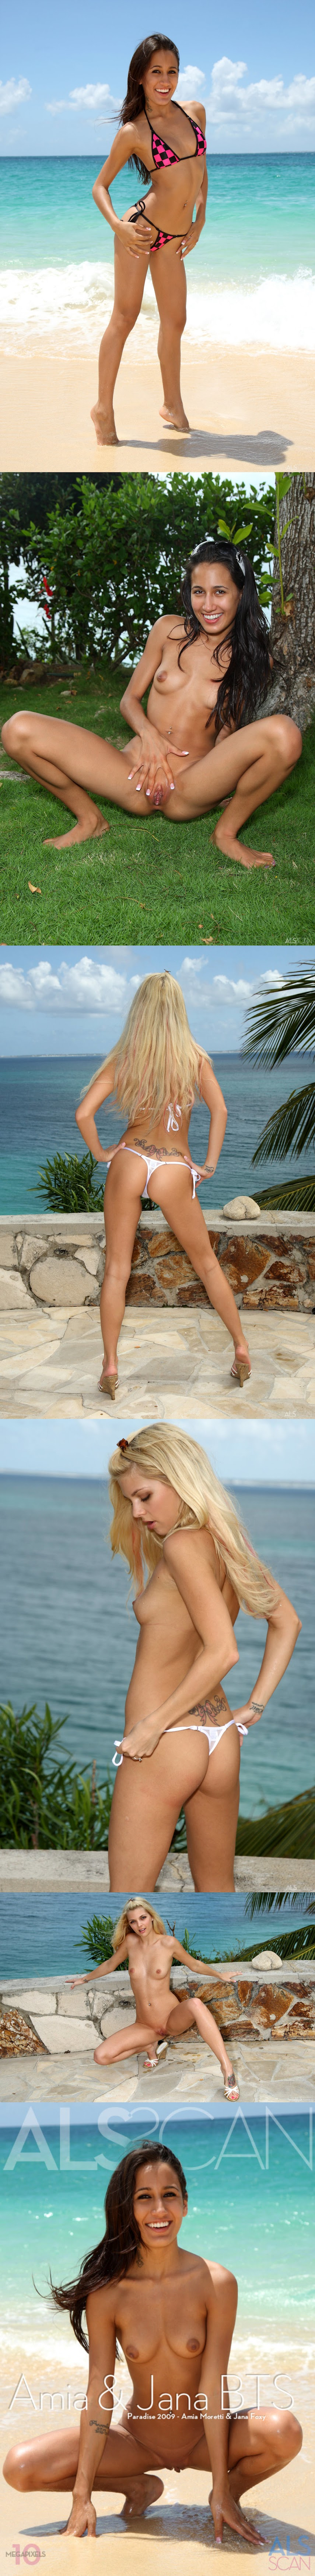 ALS_2013-01-29_AMIA--JANA-BTS-AMIA-MORETTI--JANA-FOXY--JAYME-LANGFORD--TANNER-MAYES-by-ALS-PHOTOGRAPHER_a59ab_high.zip-jk- Debriz  2013-01-29 AMIA--JANA-BTS-AMIA-MORETTI--JANA-FOXY--JAYME-LANGFORD--TANNER-MAYES-by-ALS-PHOTOGRAPHER a59ab high